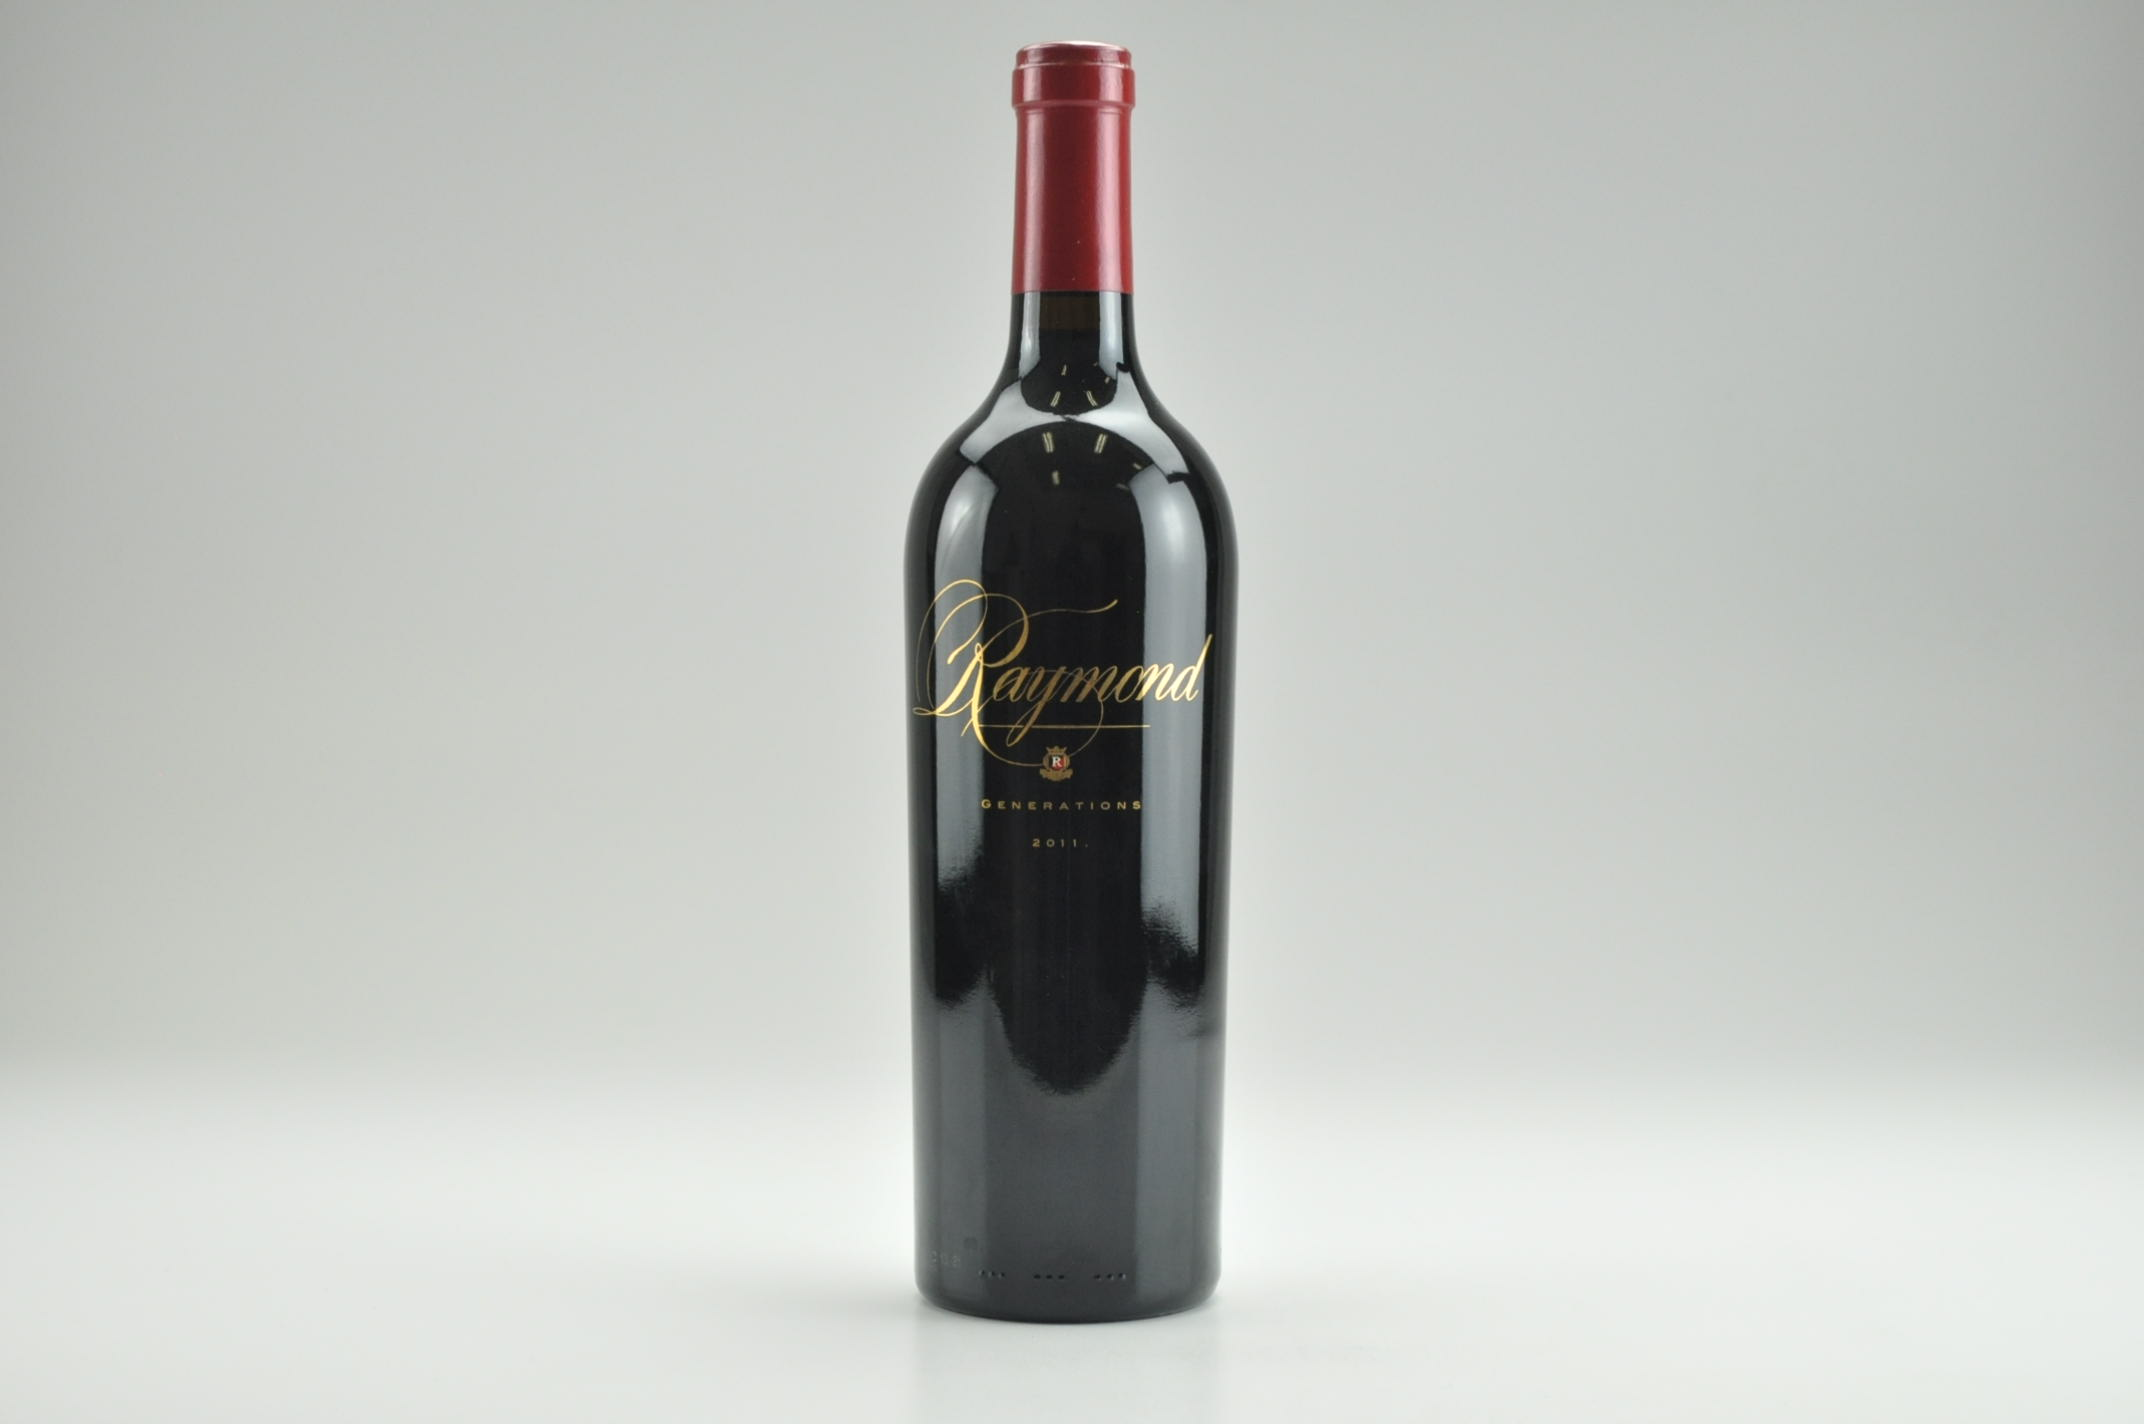 2010 Raymond Generations Cabernet Sauvignon, Napa Valley WE--95